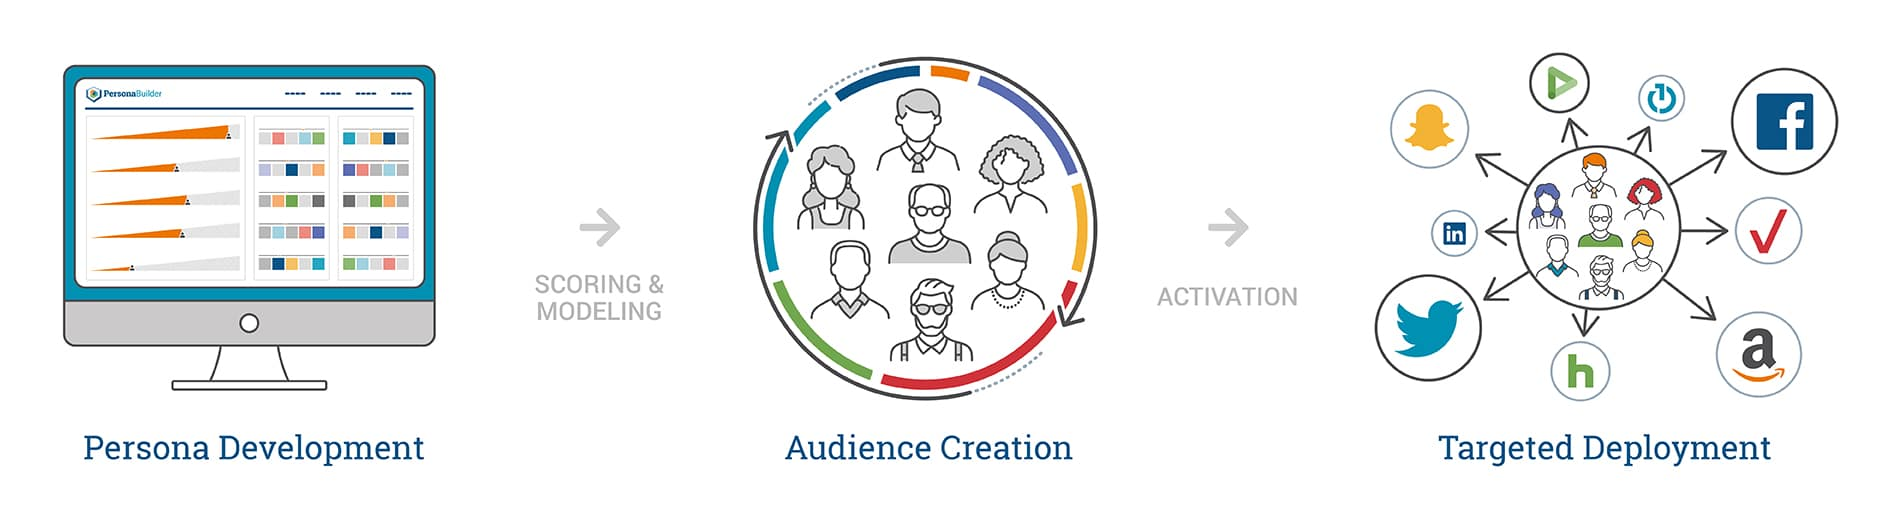 Persona development plus scoring and modeling leads to audience creation. Then the created audience can be activated through targeted deployment.